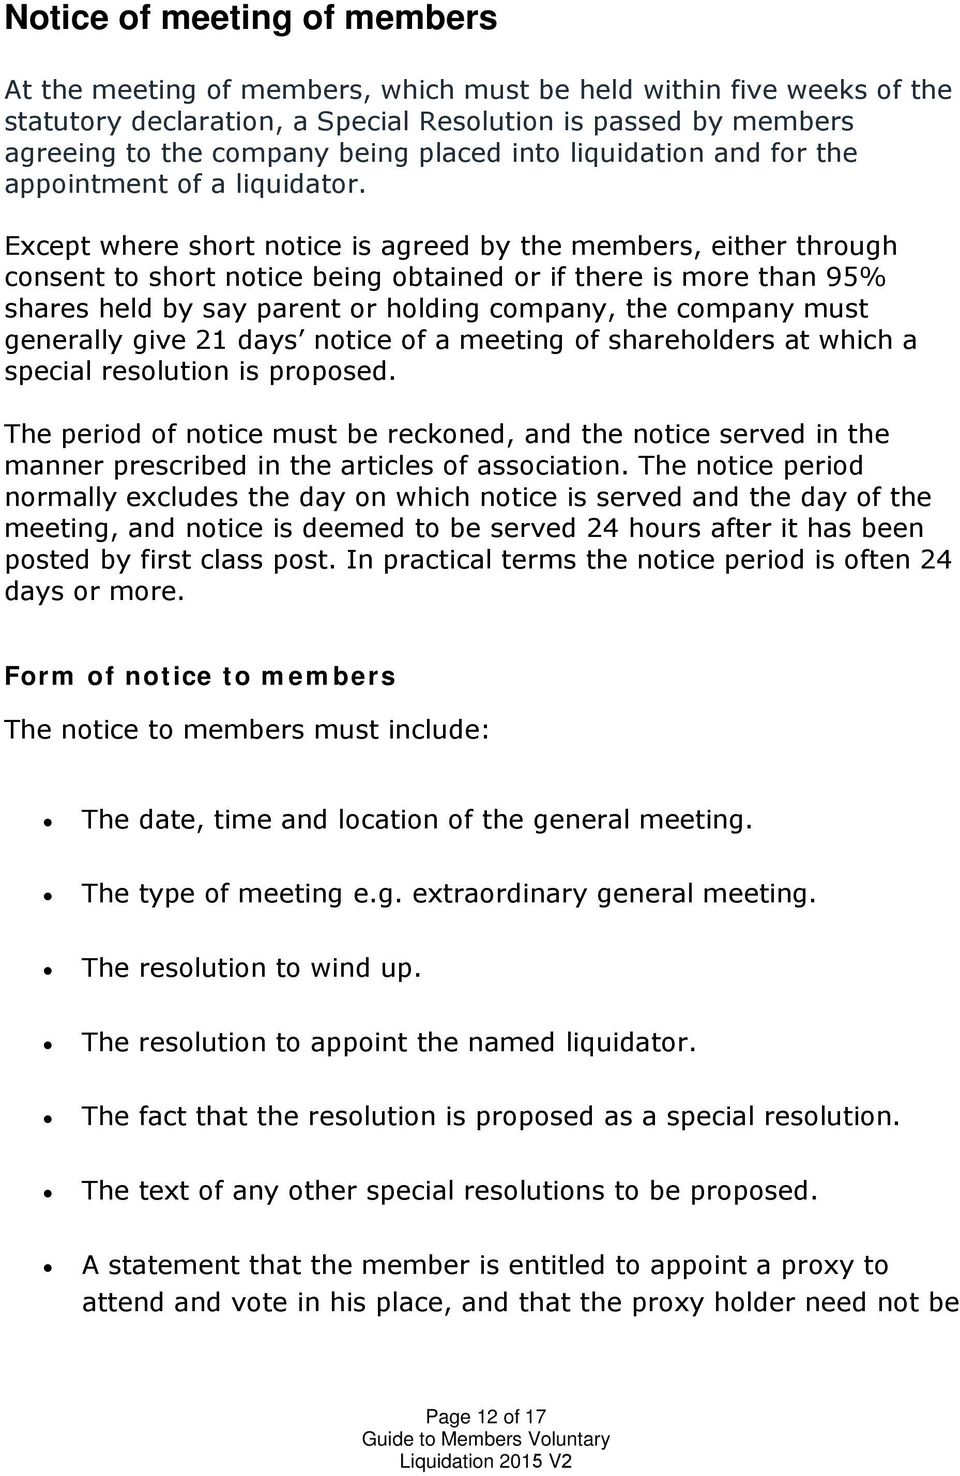 Except where short notice is agreed by the members, either through consent to short notice being obtained or if there is more than 95% shares held by say parent or holding company, the company must